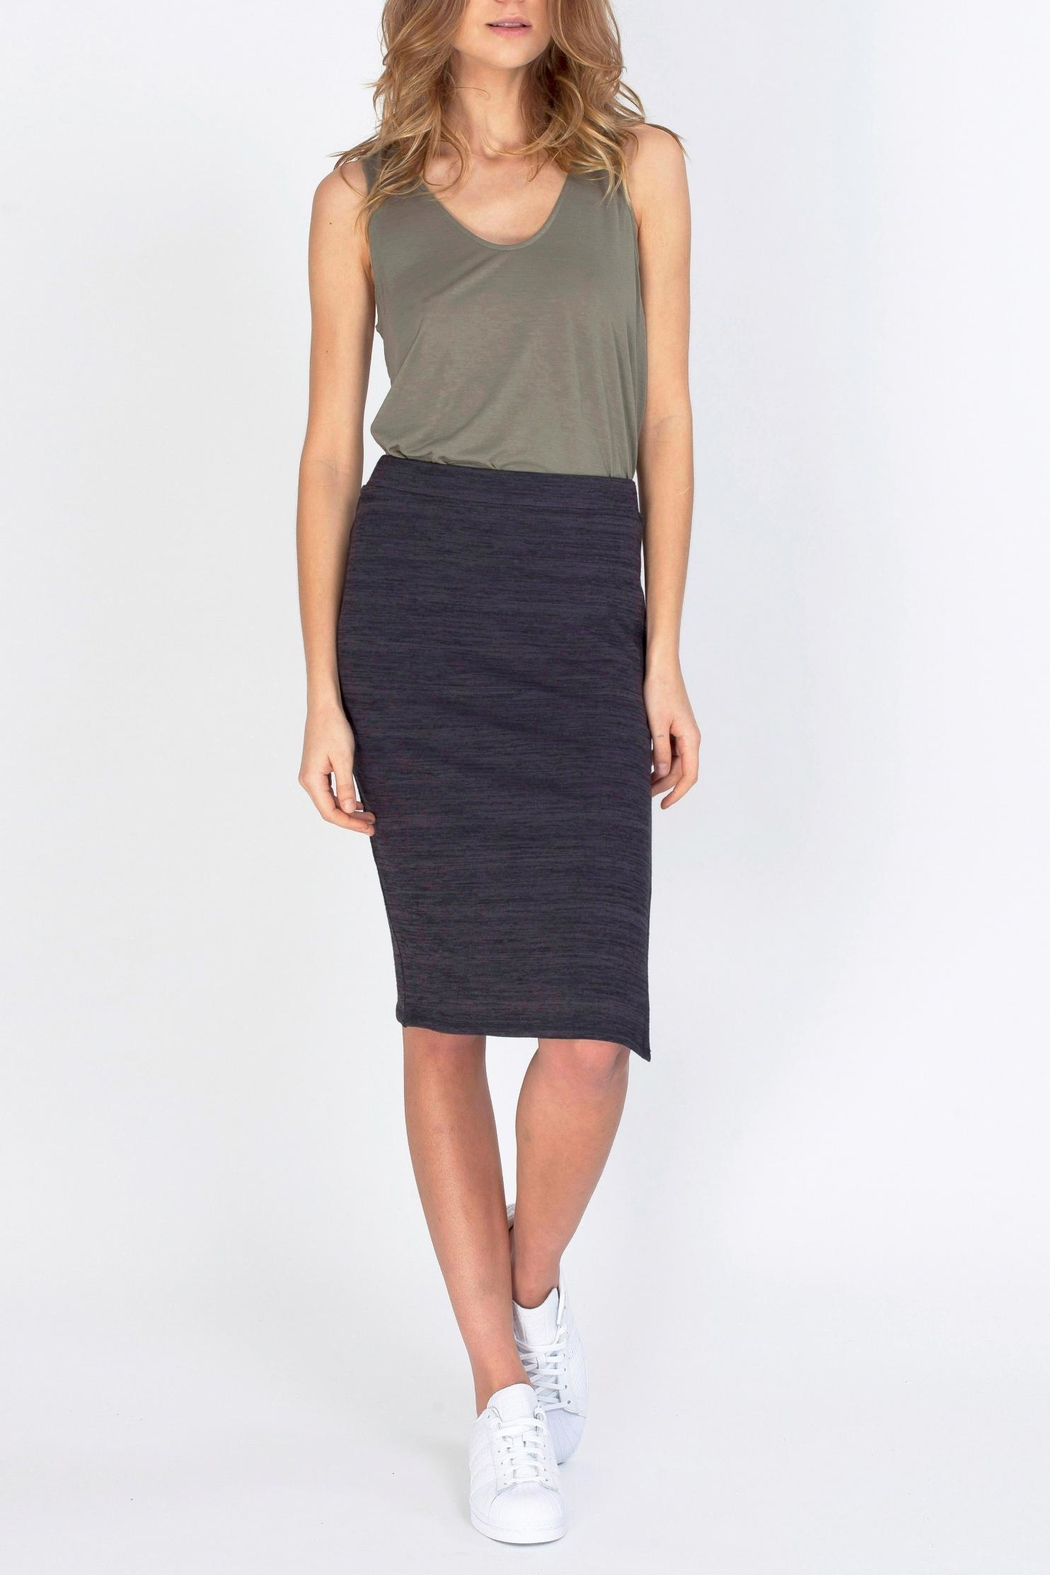 Gentle Fawn Measure Pencil Skirt - Main Image